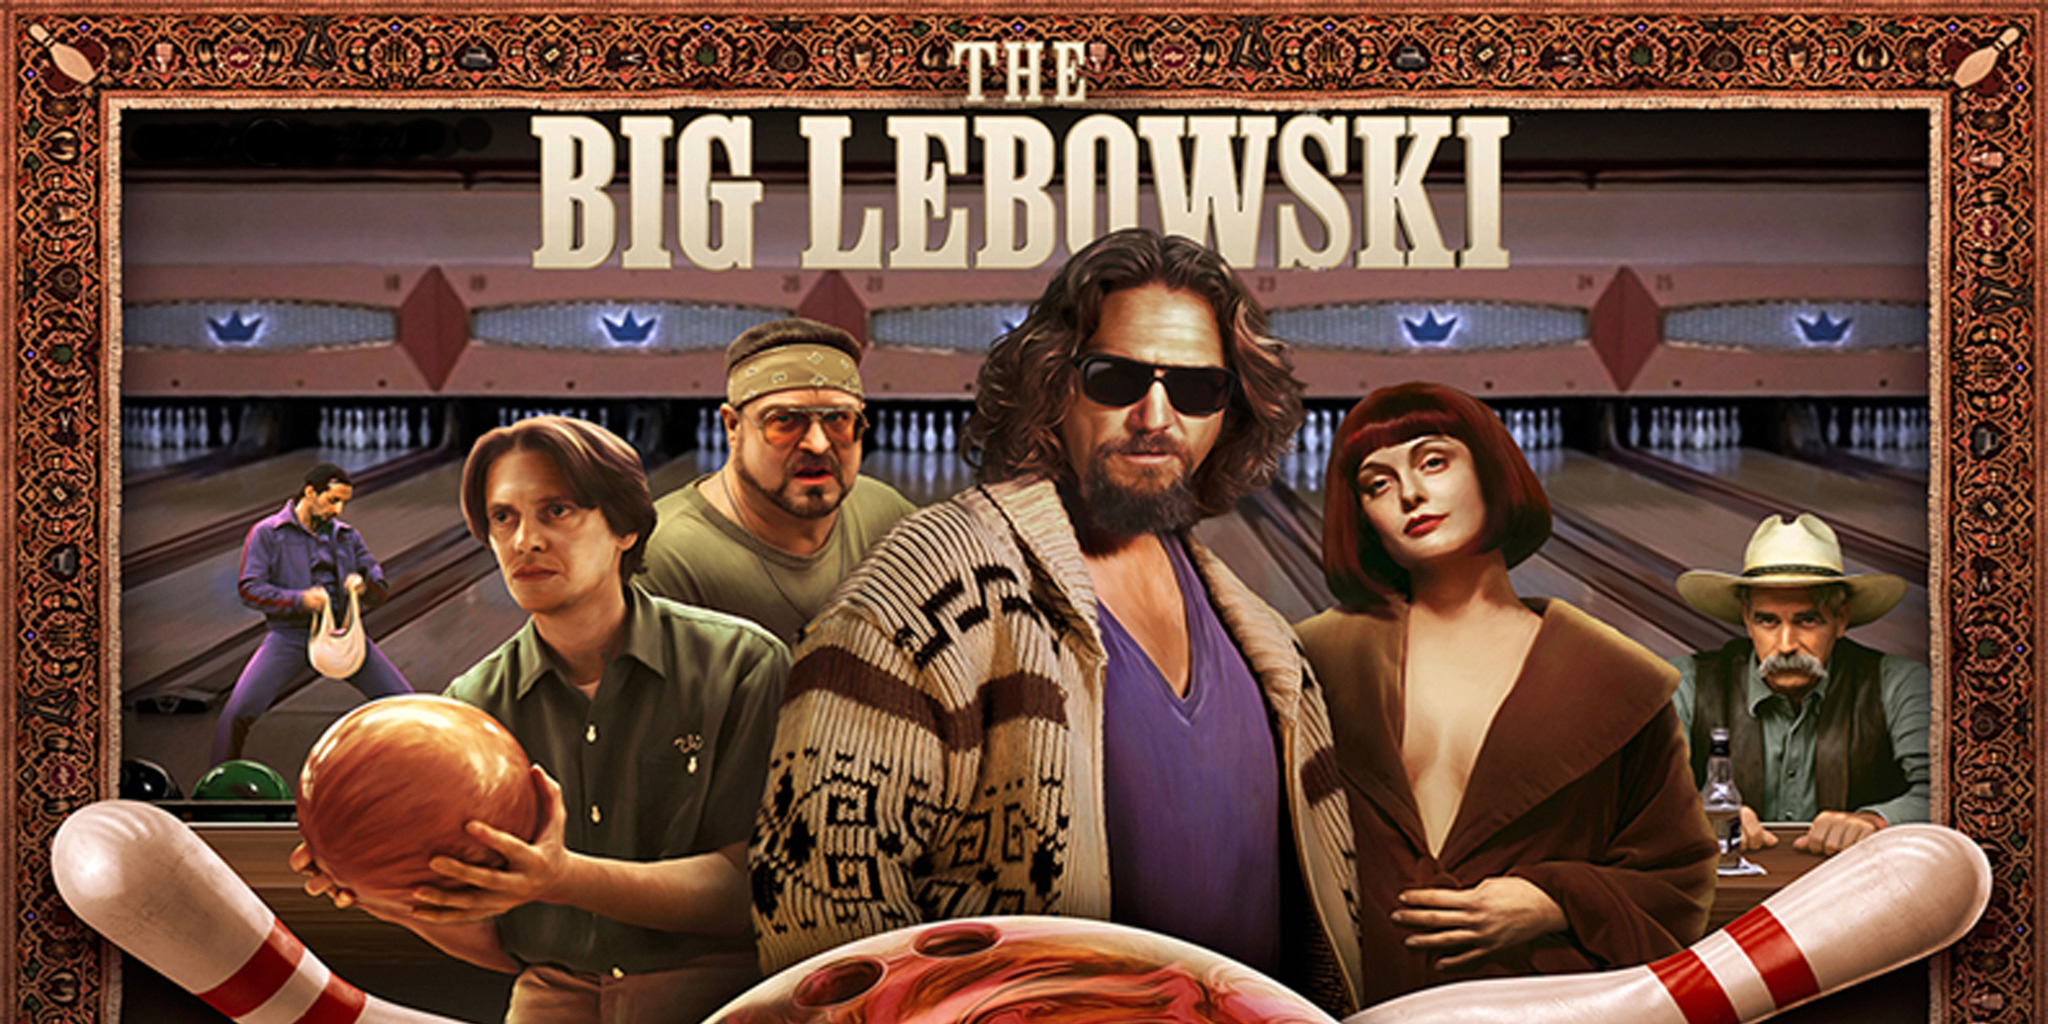 The Big Lebowski at Red Rocks Amphitheater